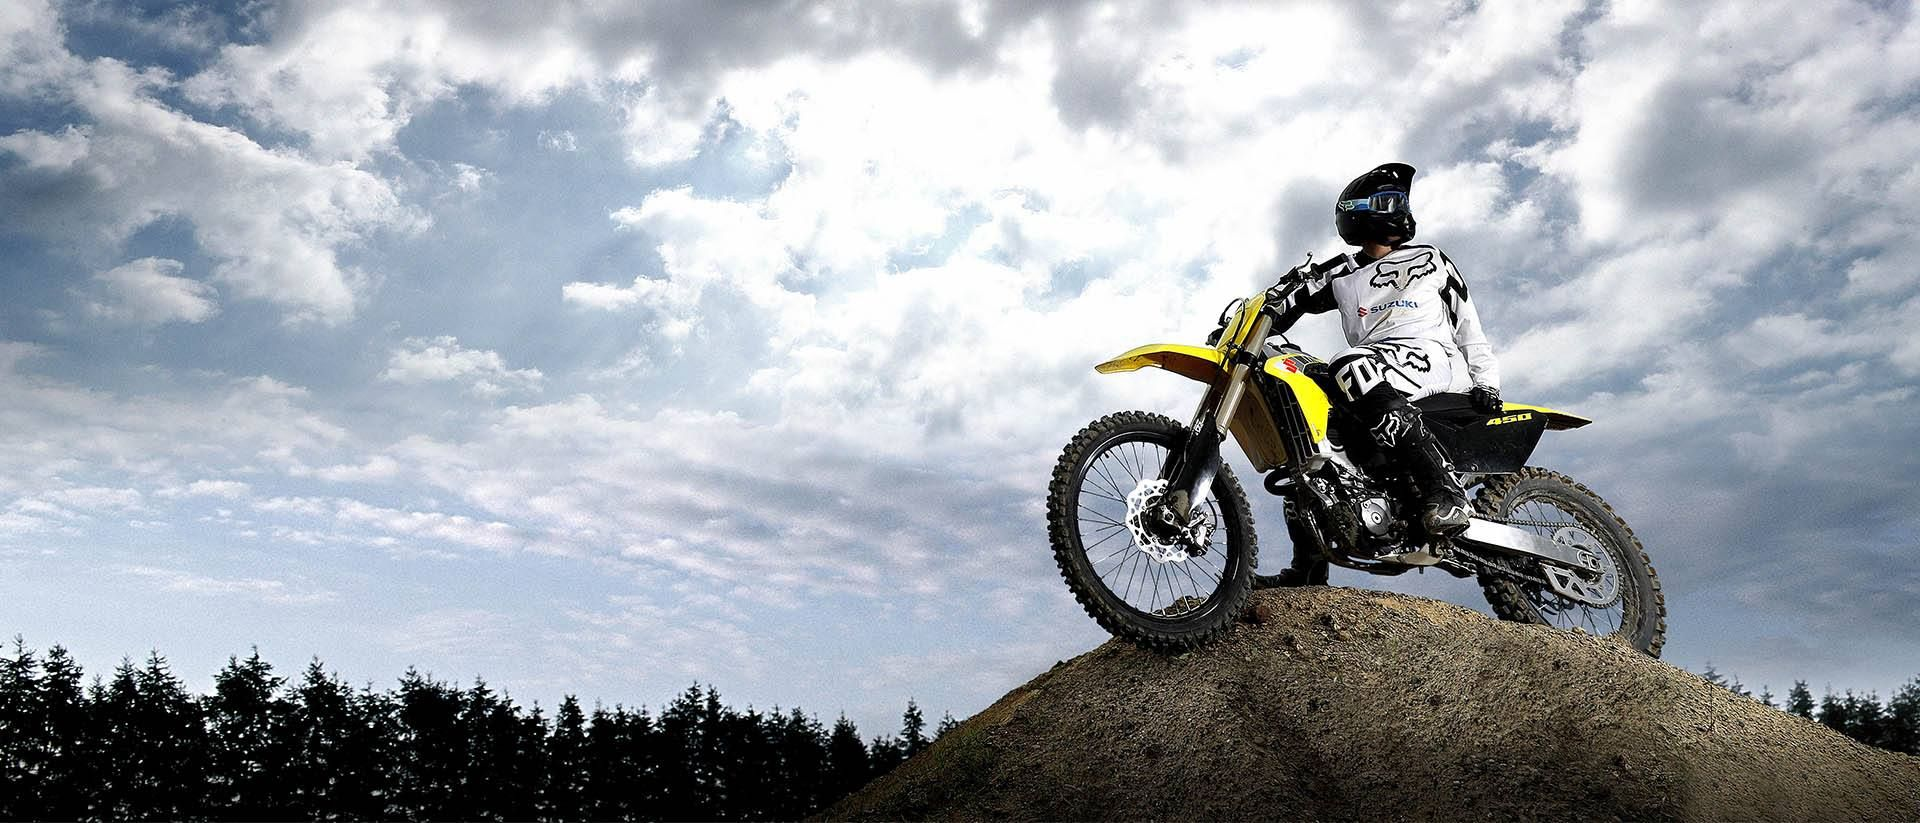 Suzuki Motocross Motorcycles for sale at Middletown Cycle in Franklin, OH